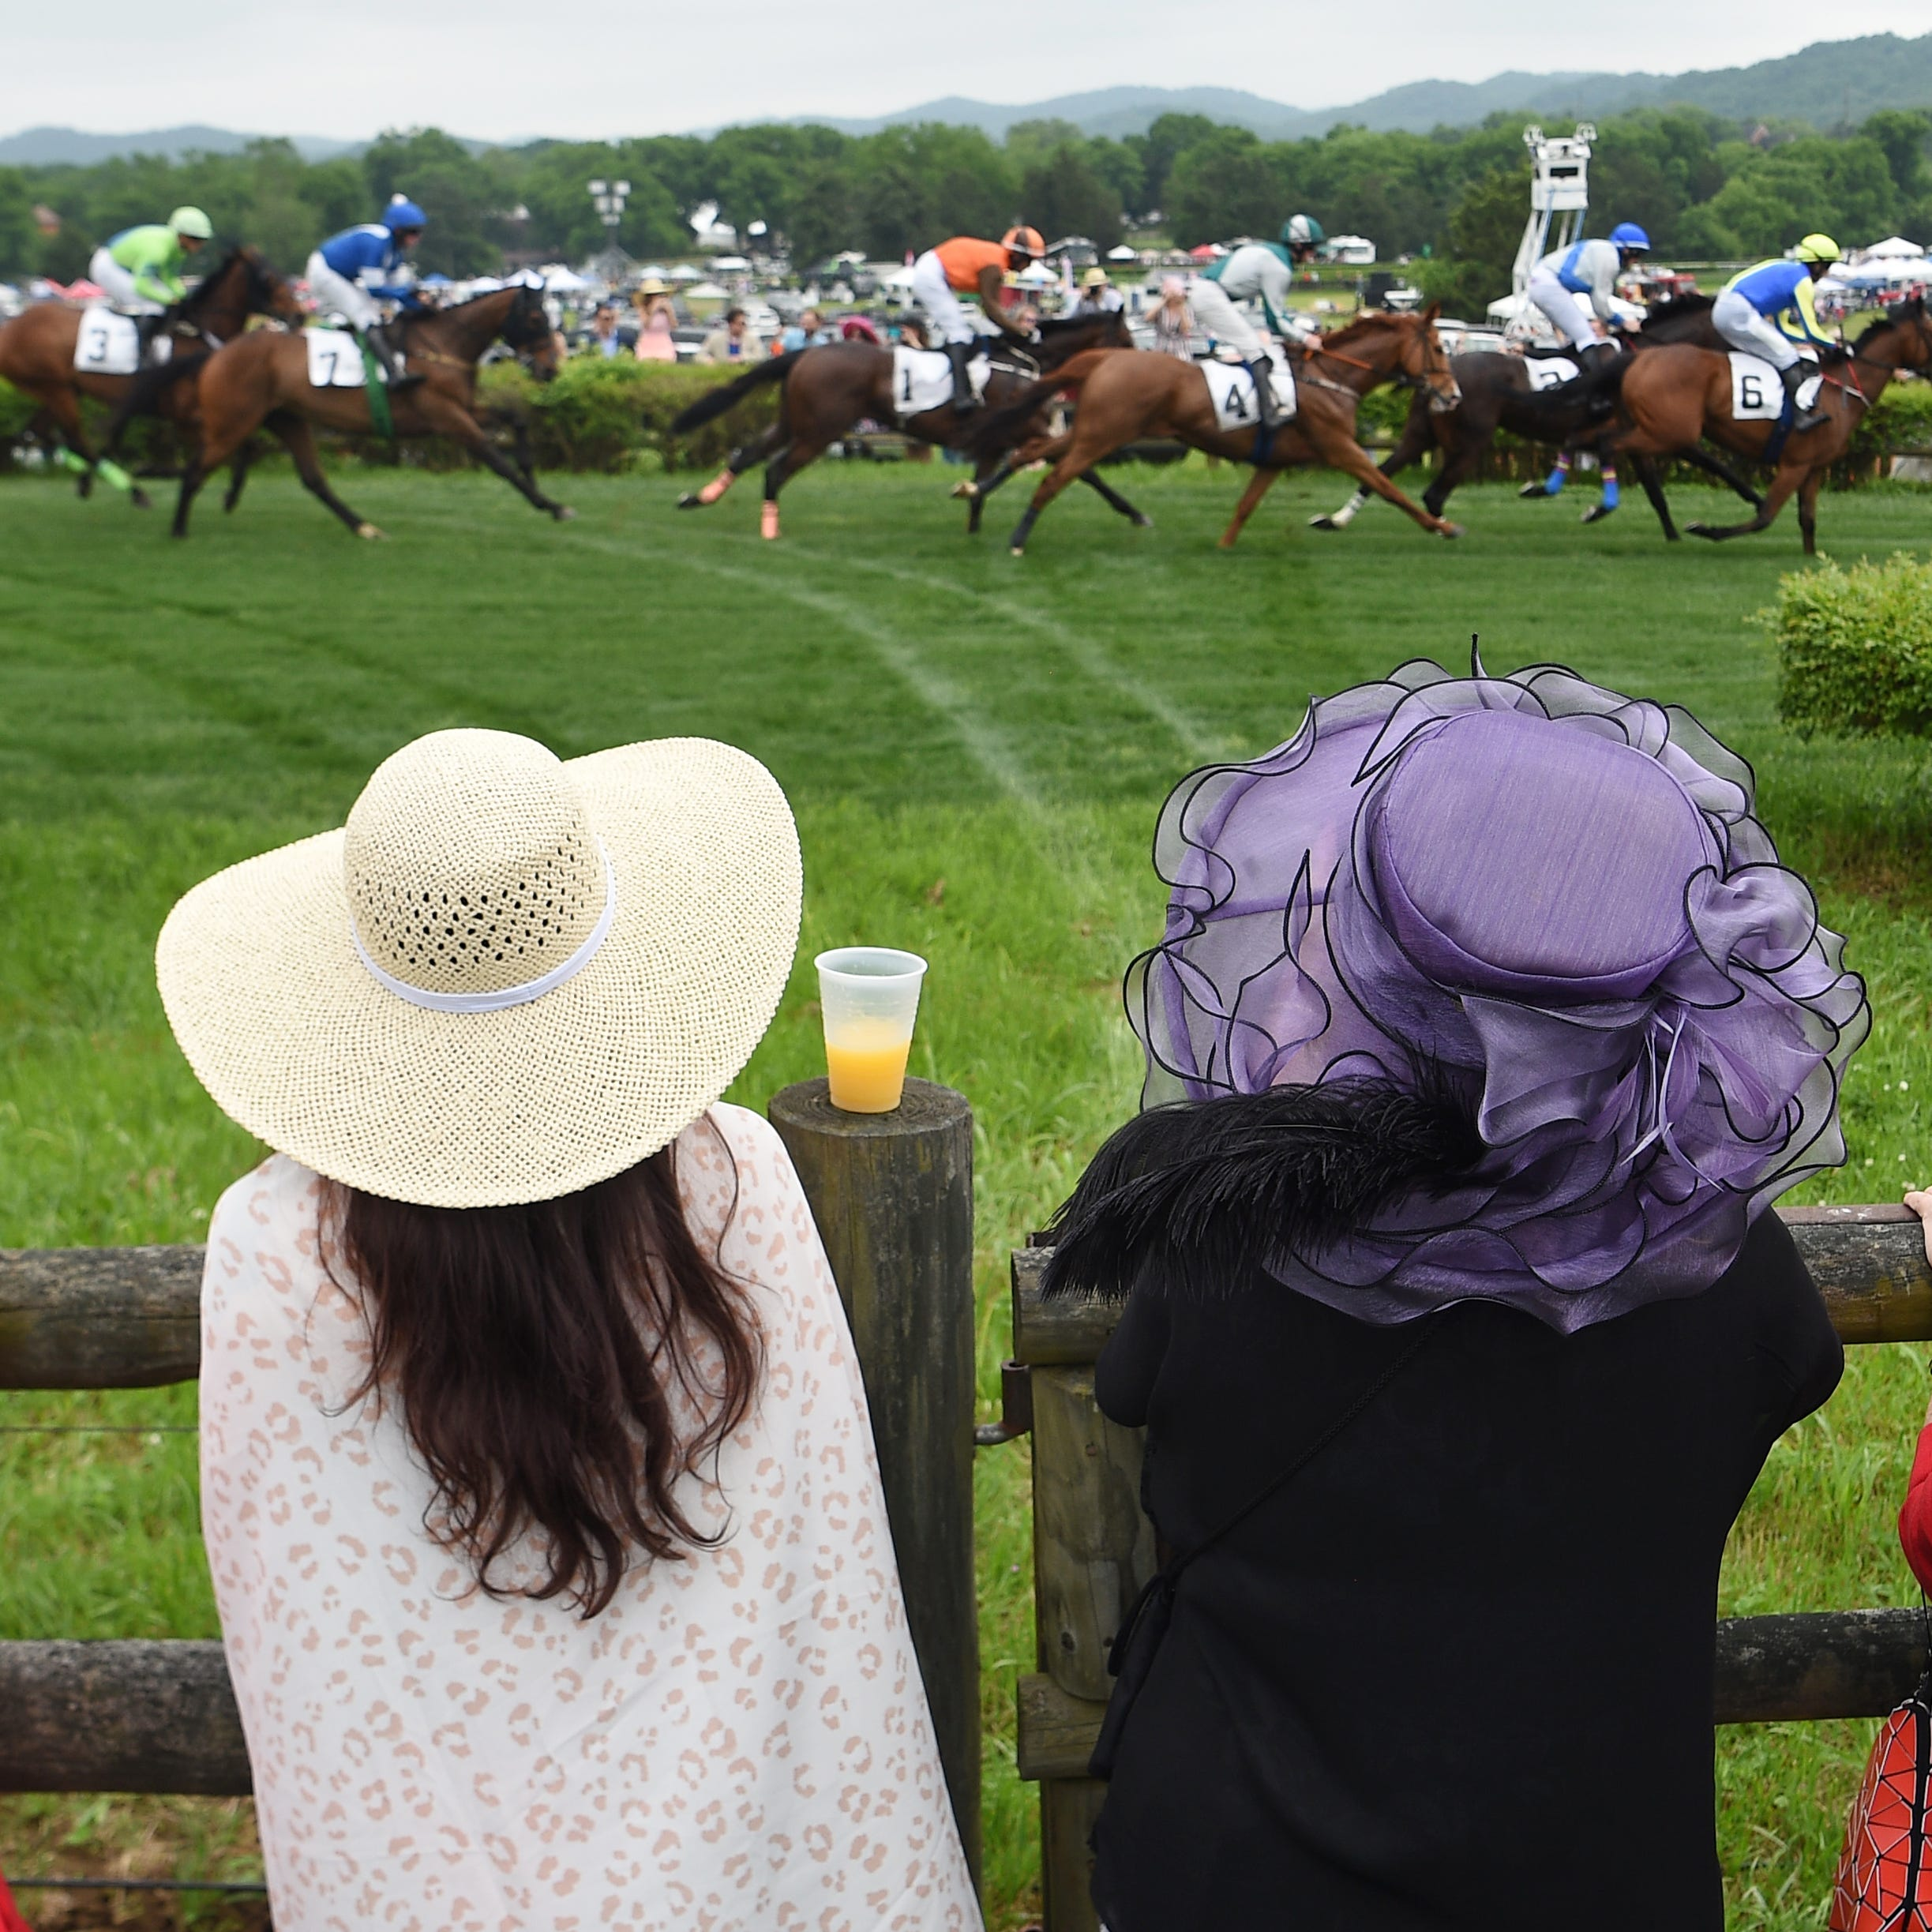 Iroquois Steeplechase attendance about normal despite rain, ticket price increase